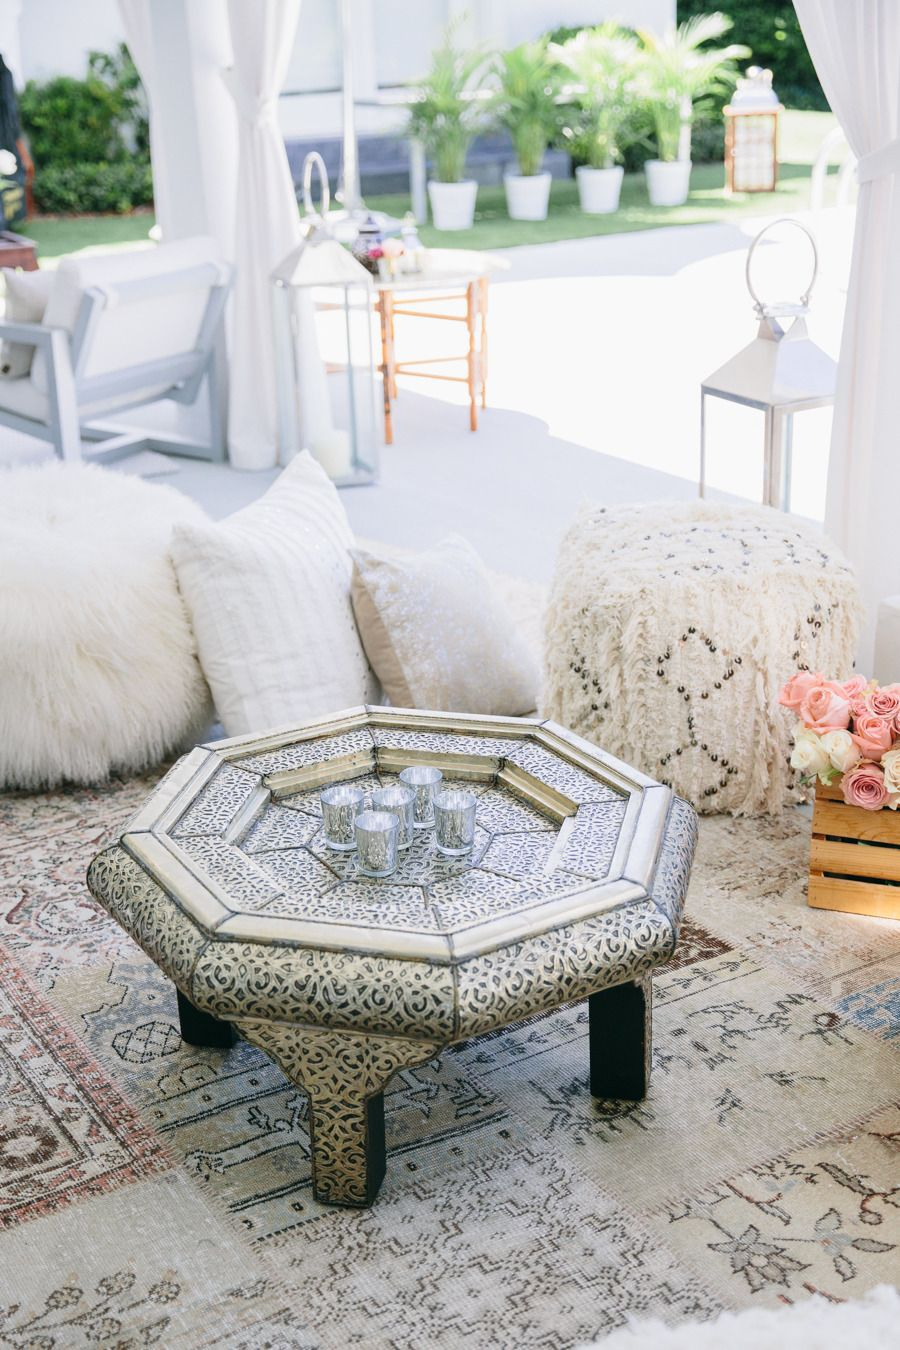 Moroccan Boho Chic Inspired Baby Shower | Moroccan, Moroccan decor ...